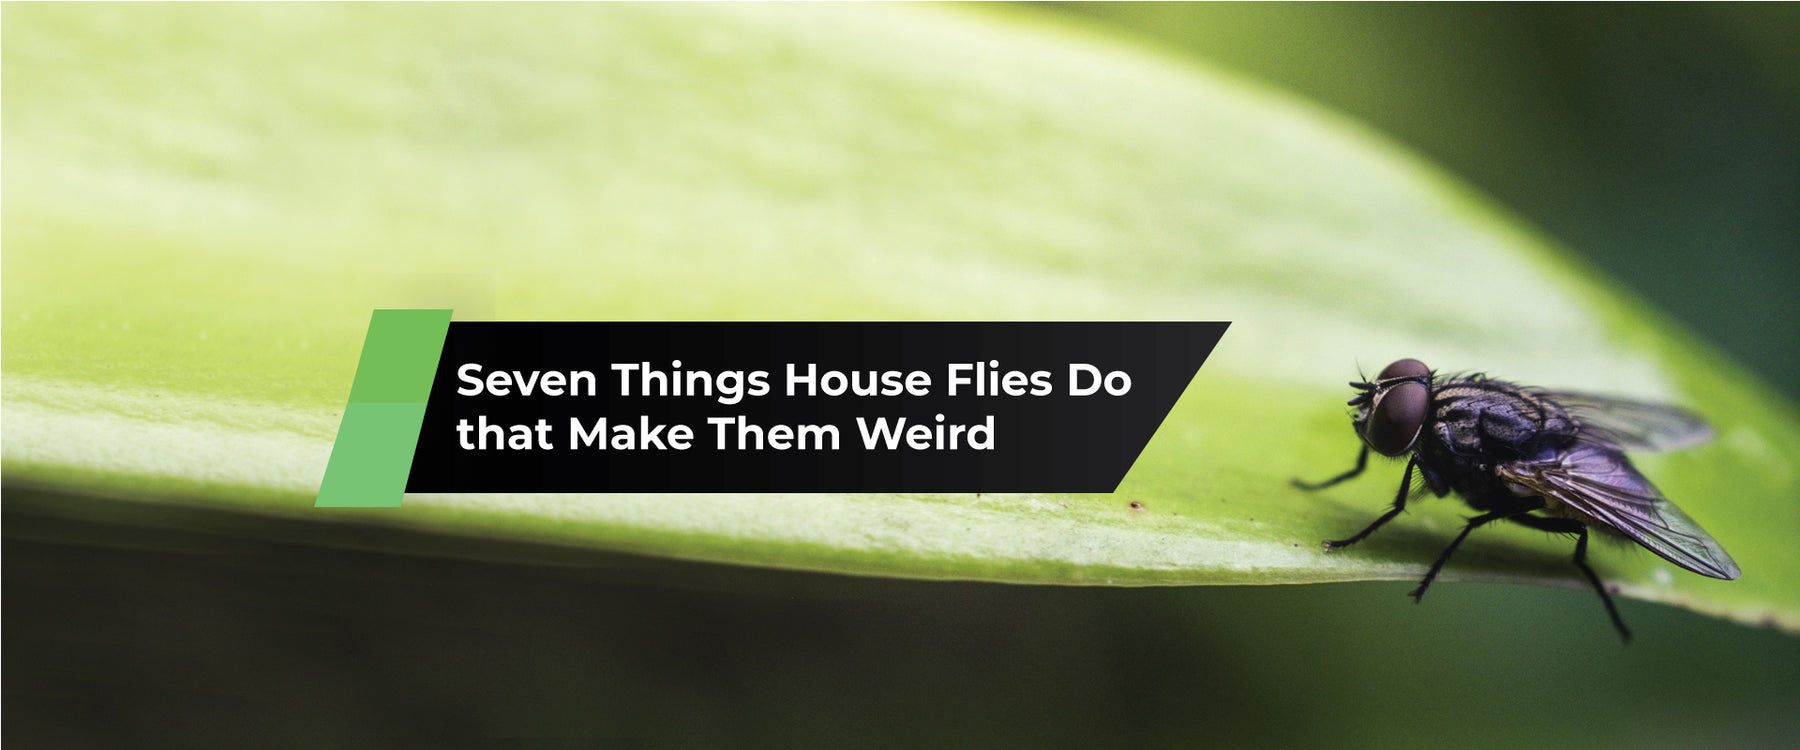 Seven Things House Flies Do that Make Them Weird